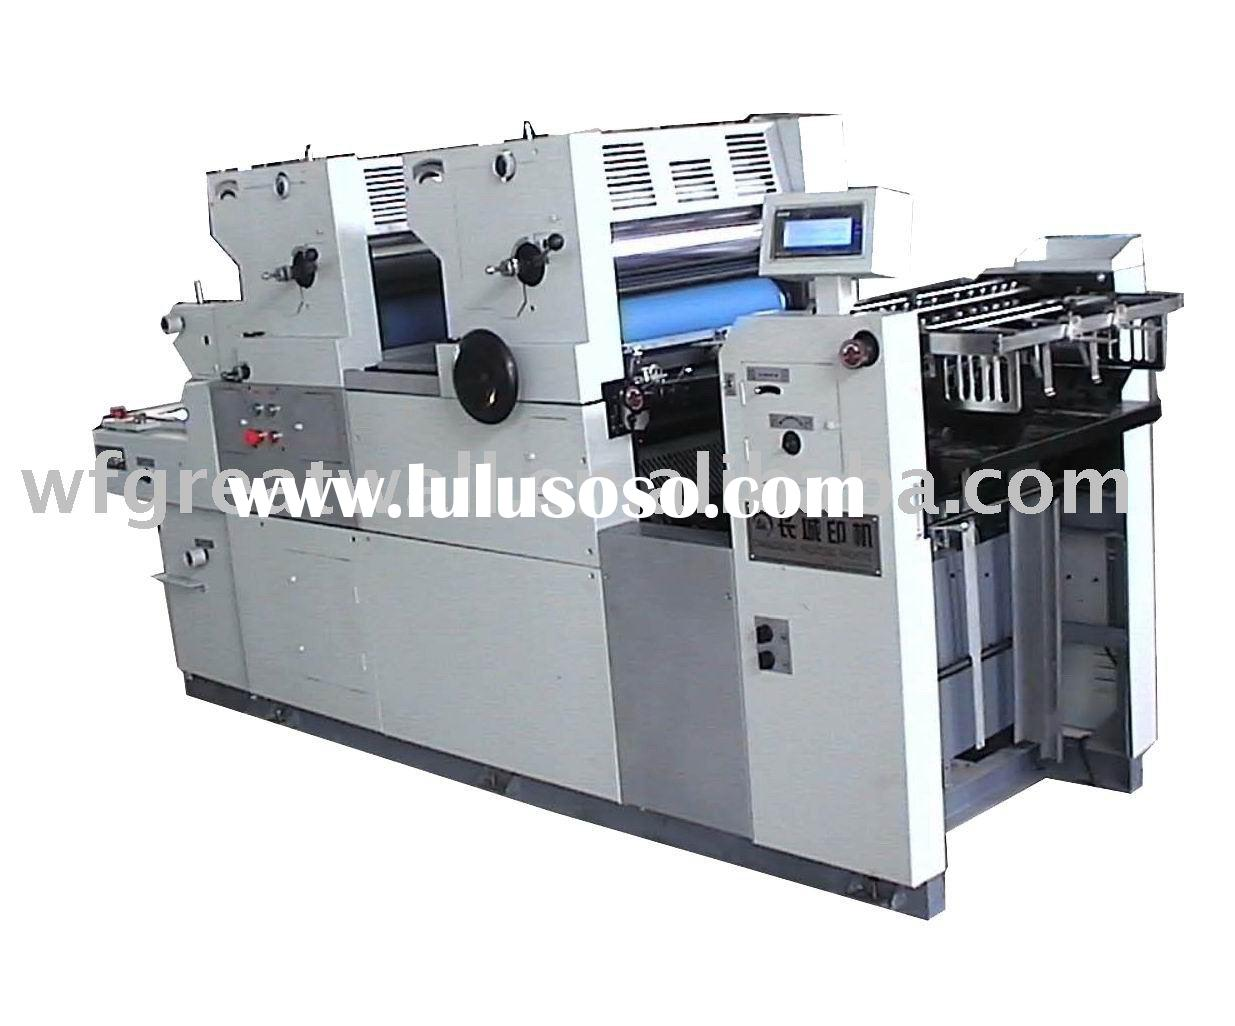 newspaper printing machine price list